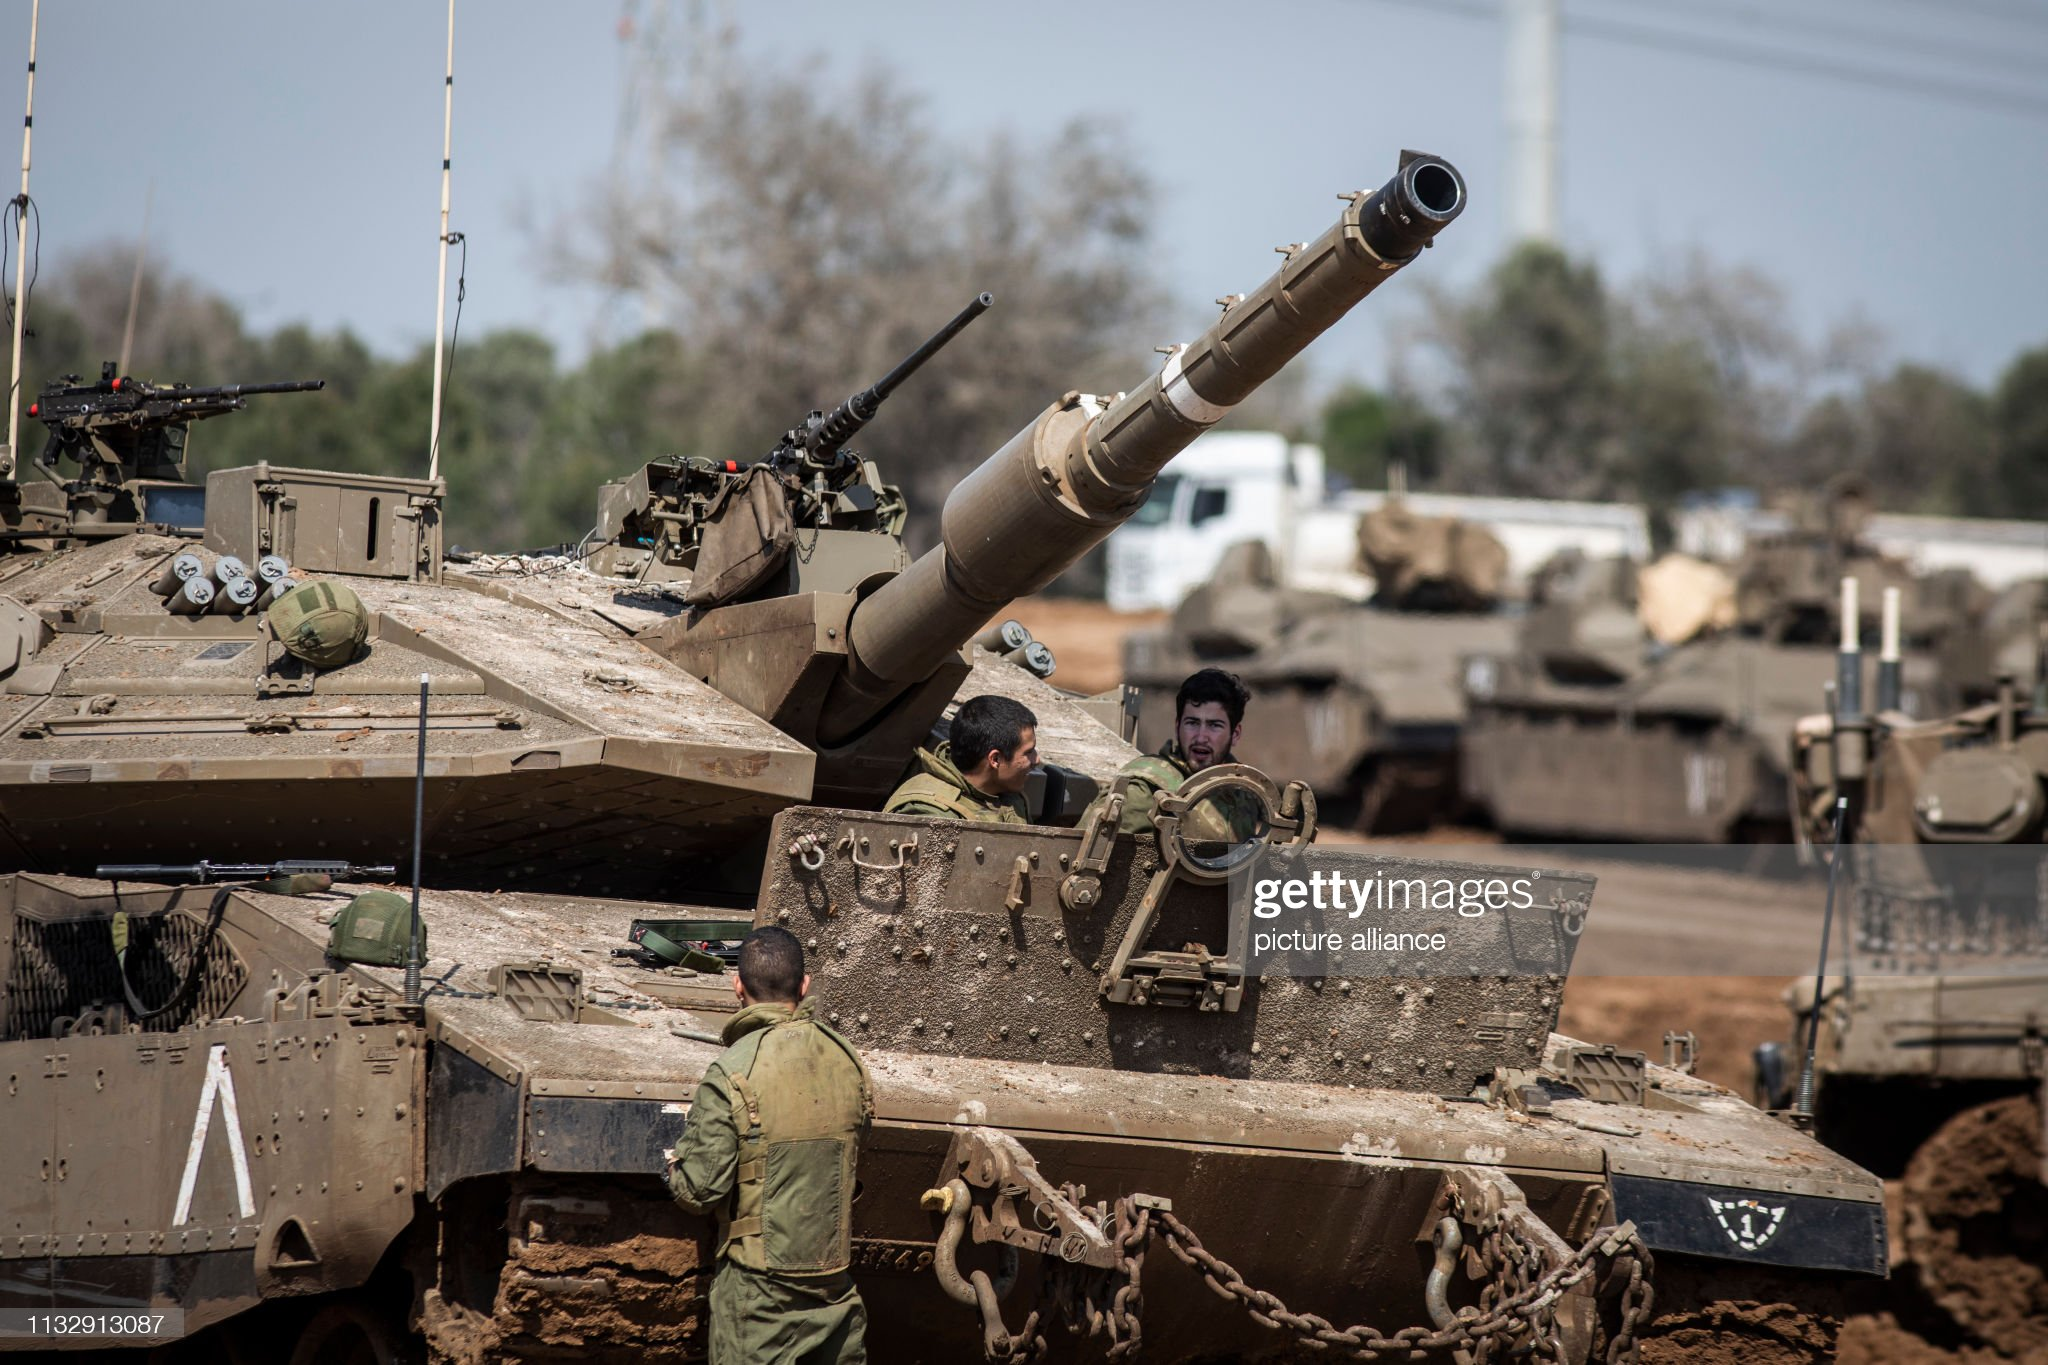 https://media.gettyimages.com/photos/march-2019-israel-ashelon-israeli-tanks-and-armoured-personnel-seen-picture-id1132913087?s=2048x2048